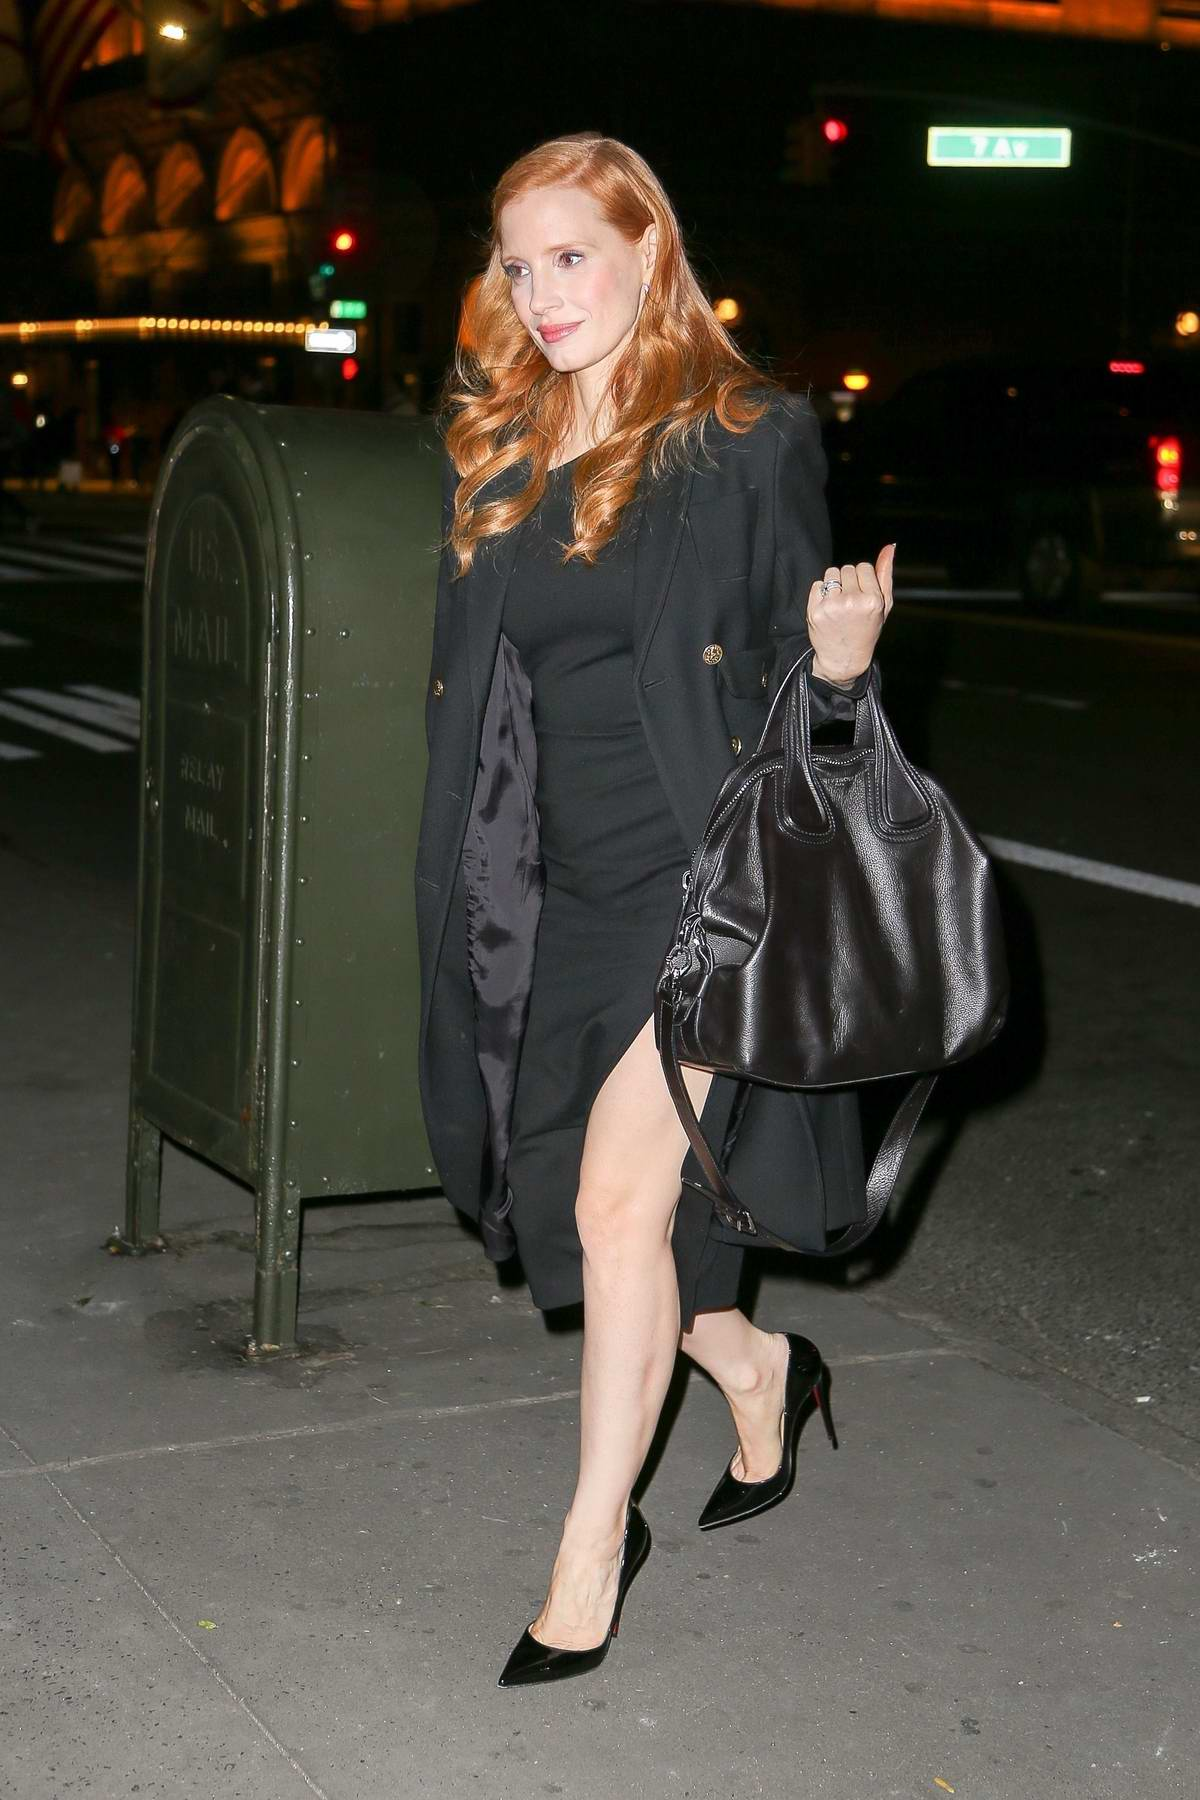 Jessica Chastain seen out and about, after her appearance at 'The Tonight Show Starring Jimmy Fallon' in New York City